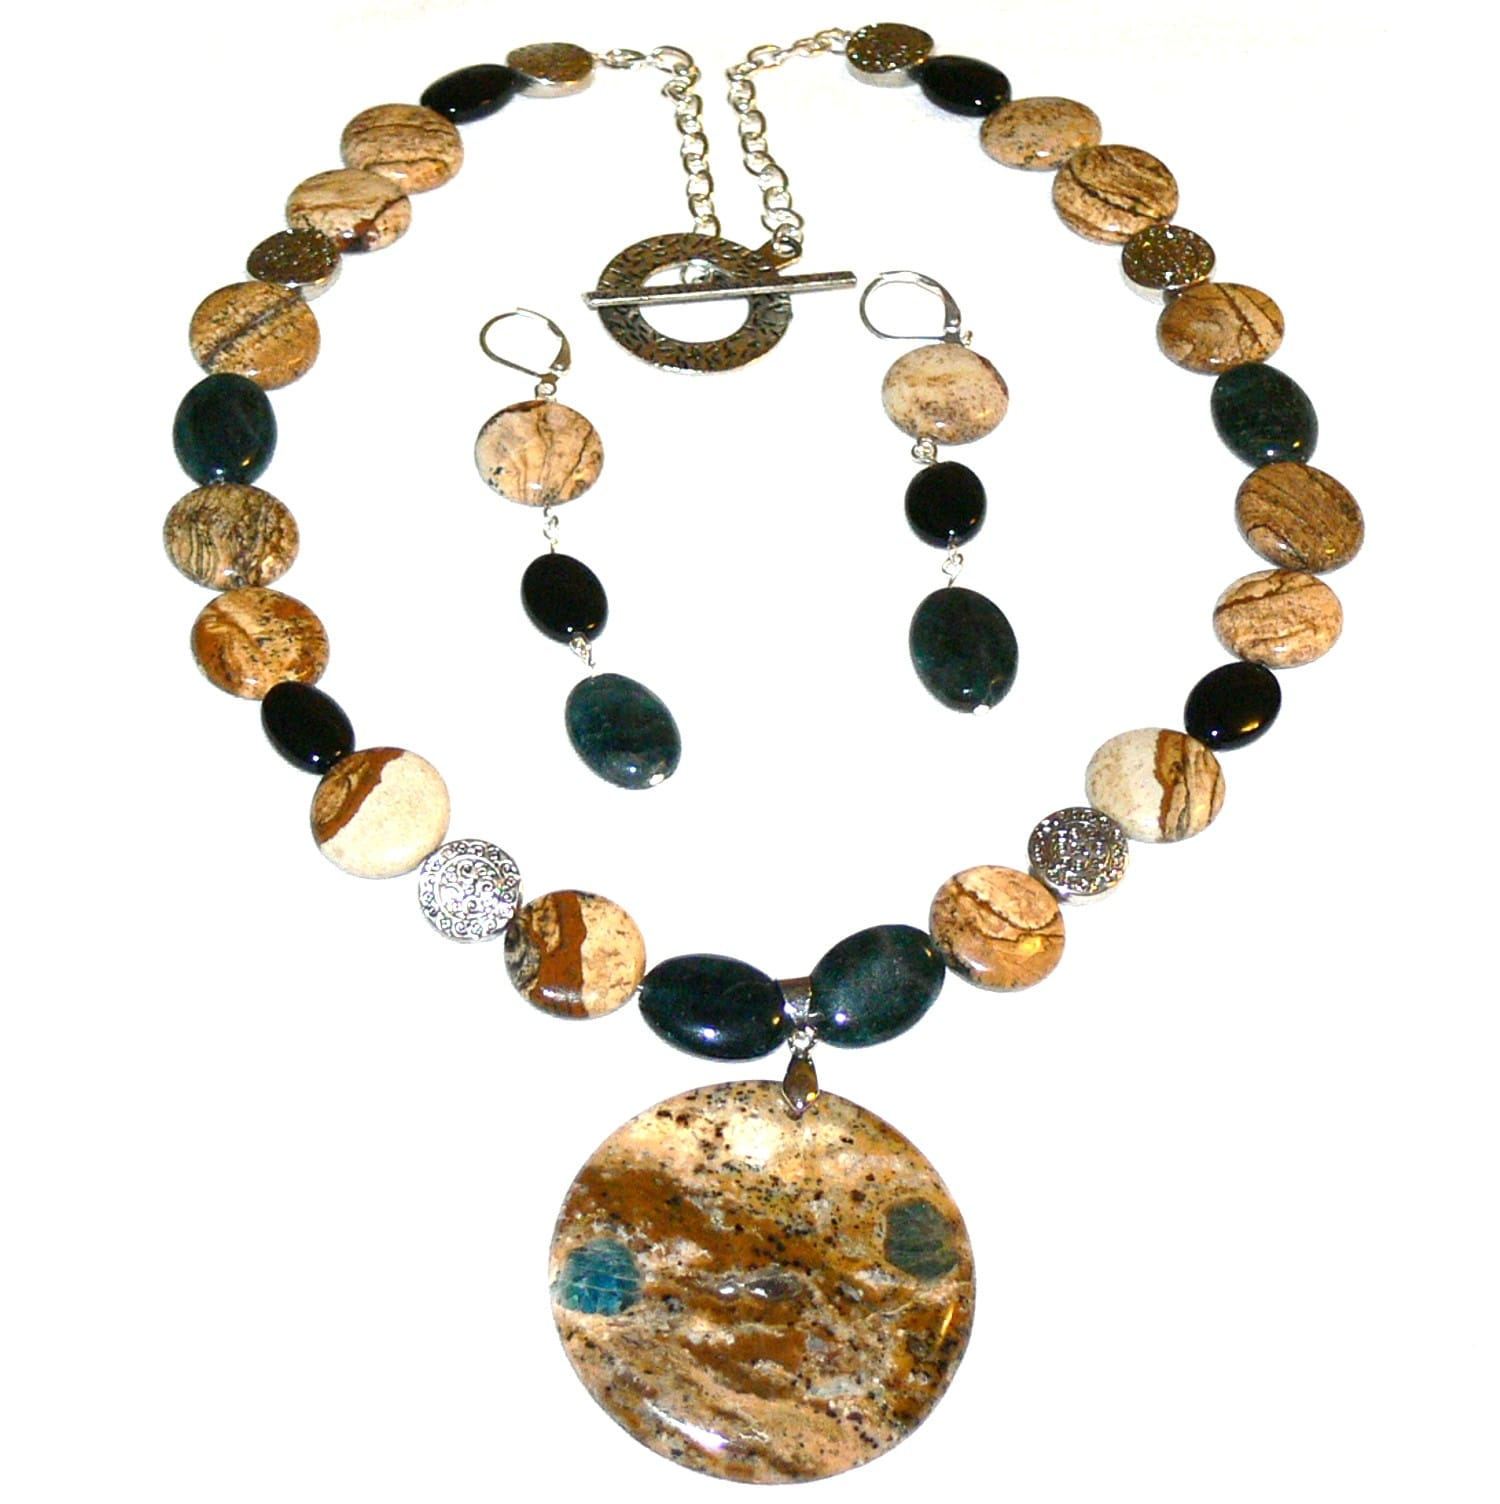 Susen Foster Designs 'Lake Country' Necklace and Earring Set